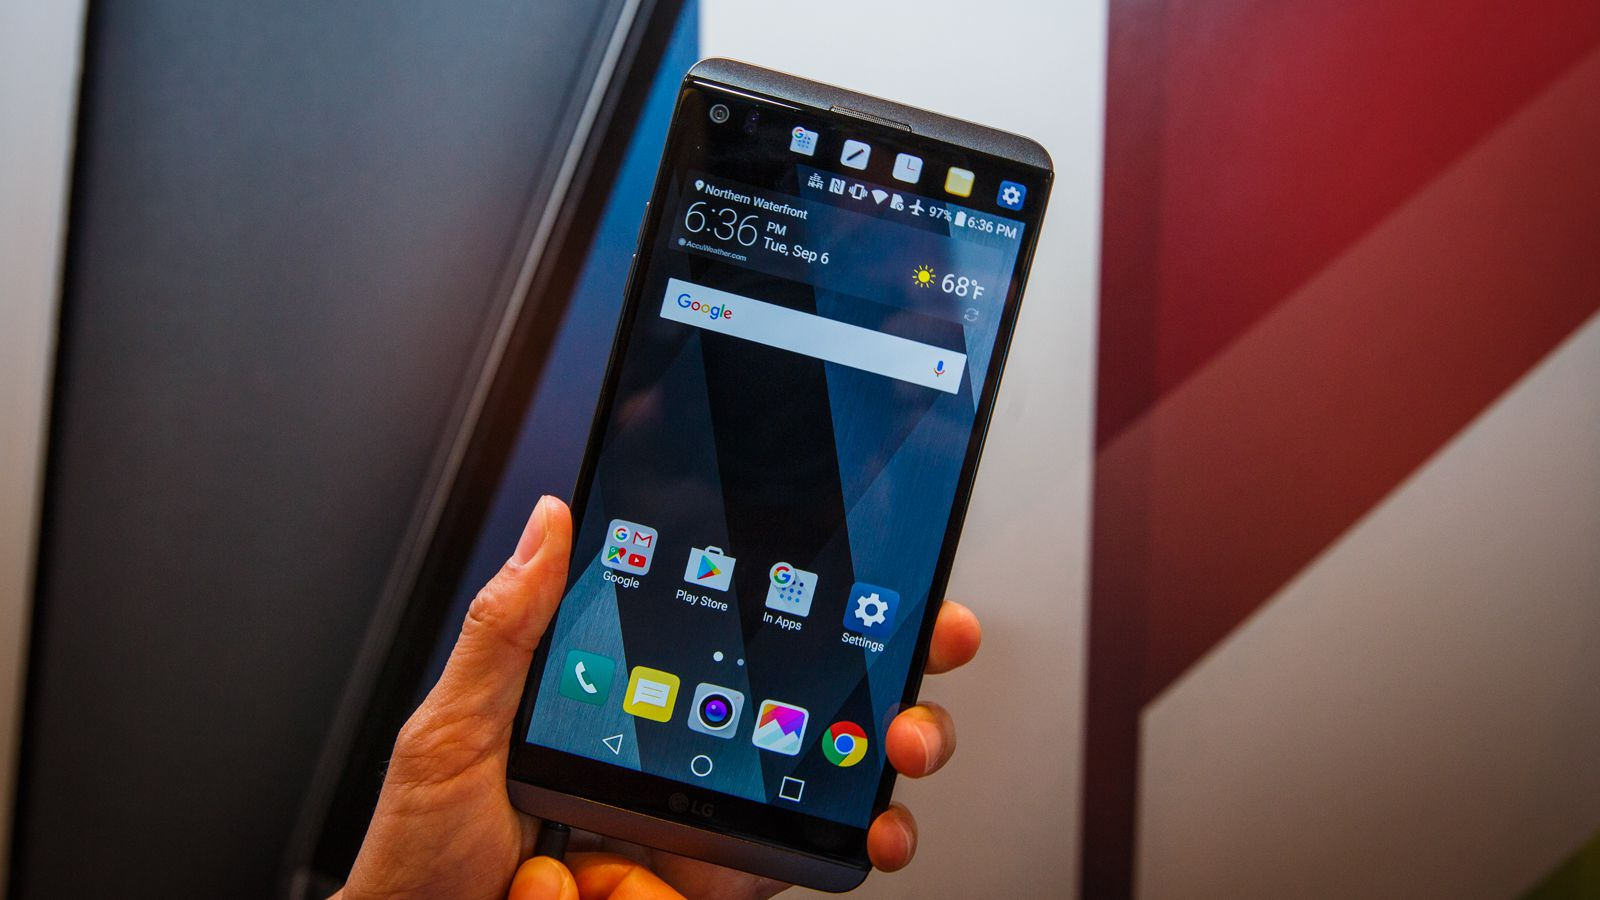 #1 in Our Best LG Touch Phone Lis - LG V20